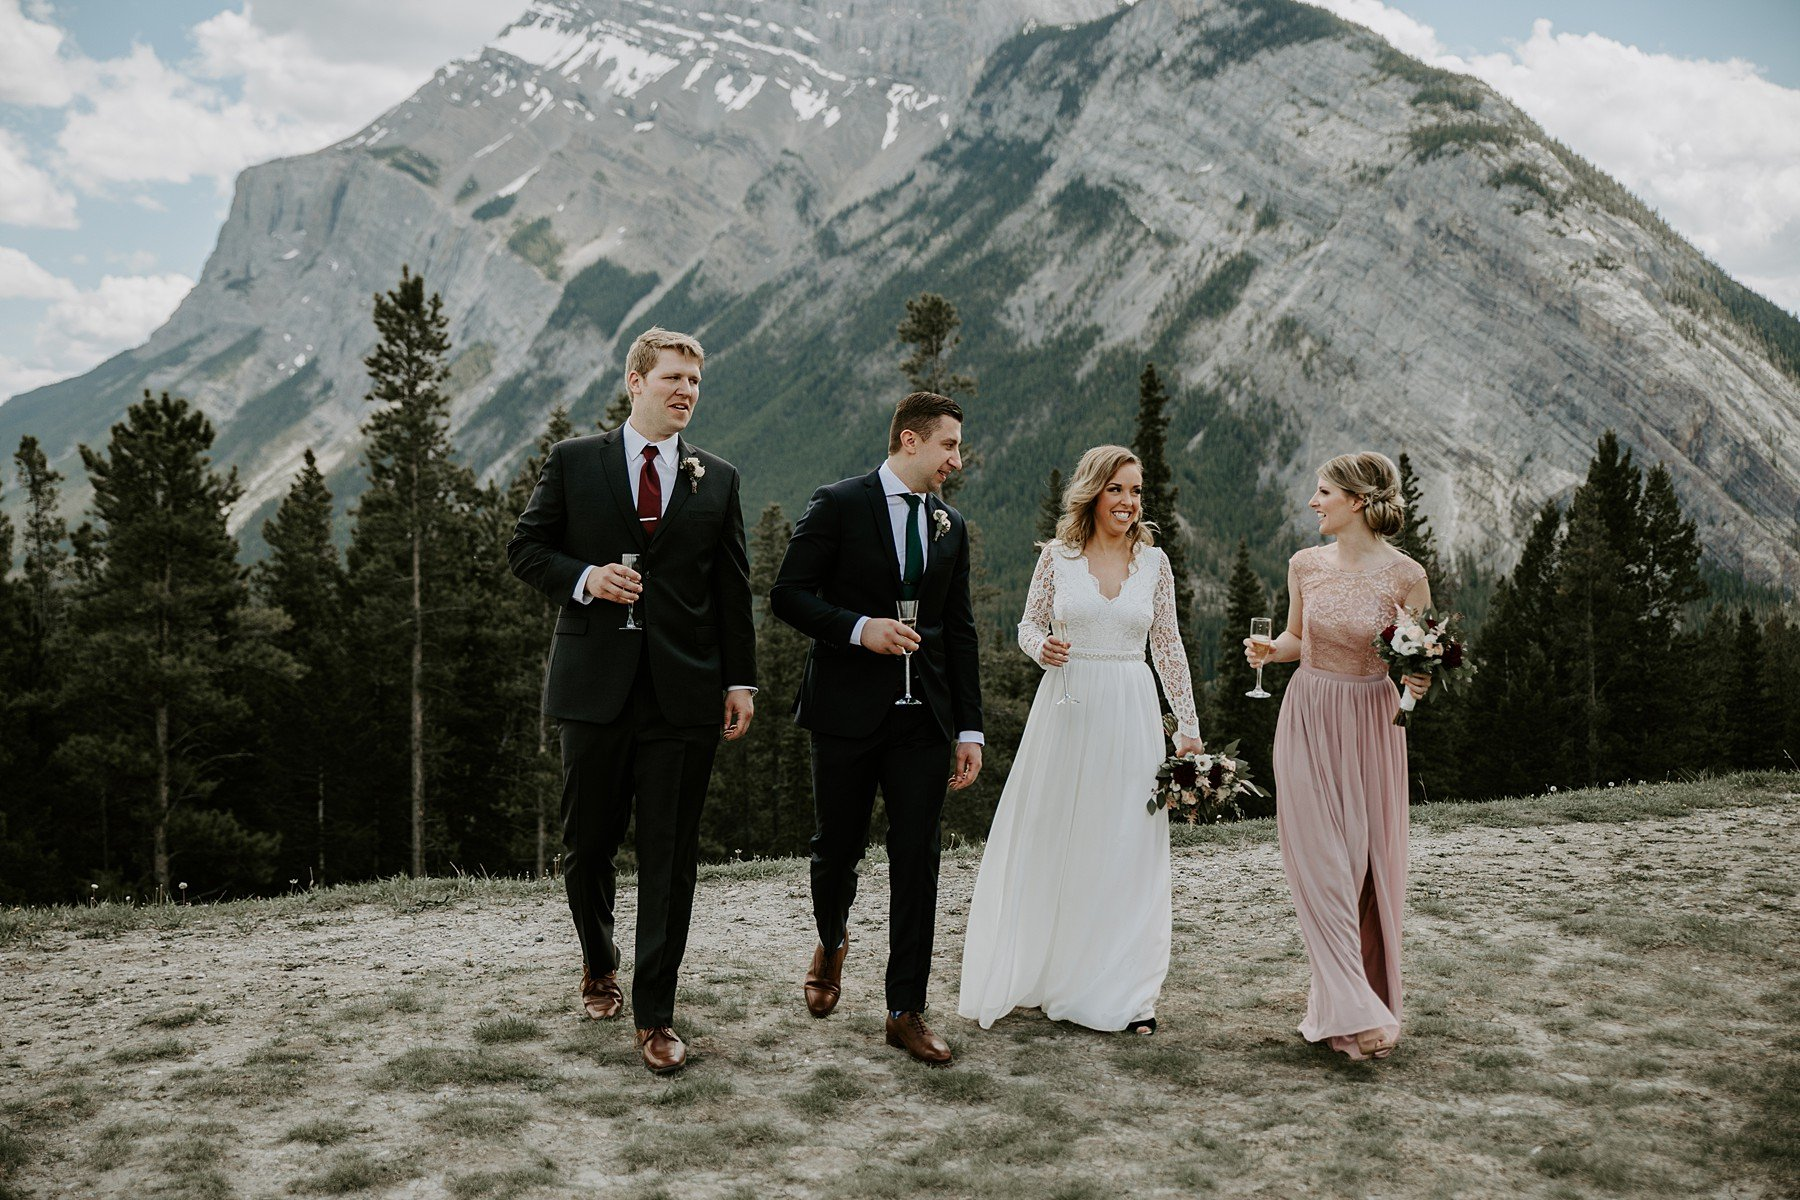 Teller of Tales Photography - Elopement - Tunnel Mountain Banff-59.jpg